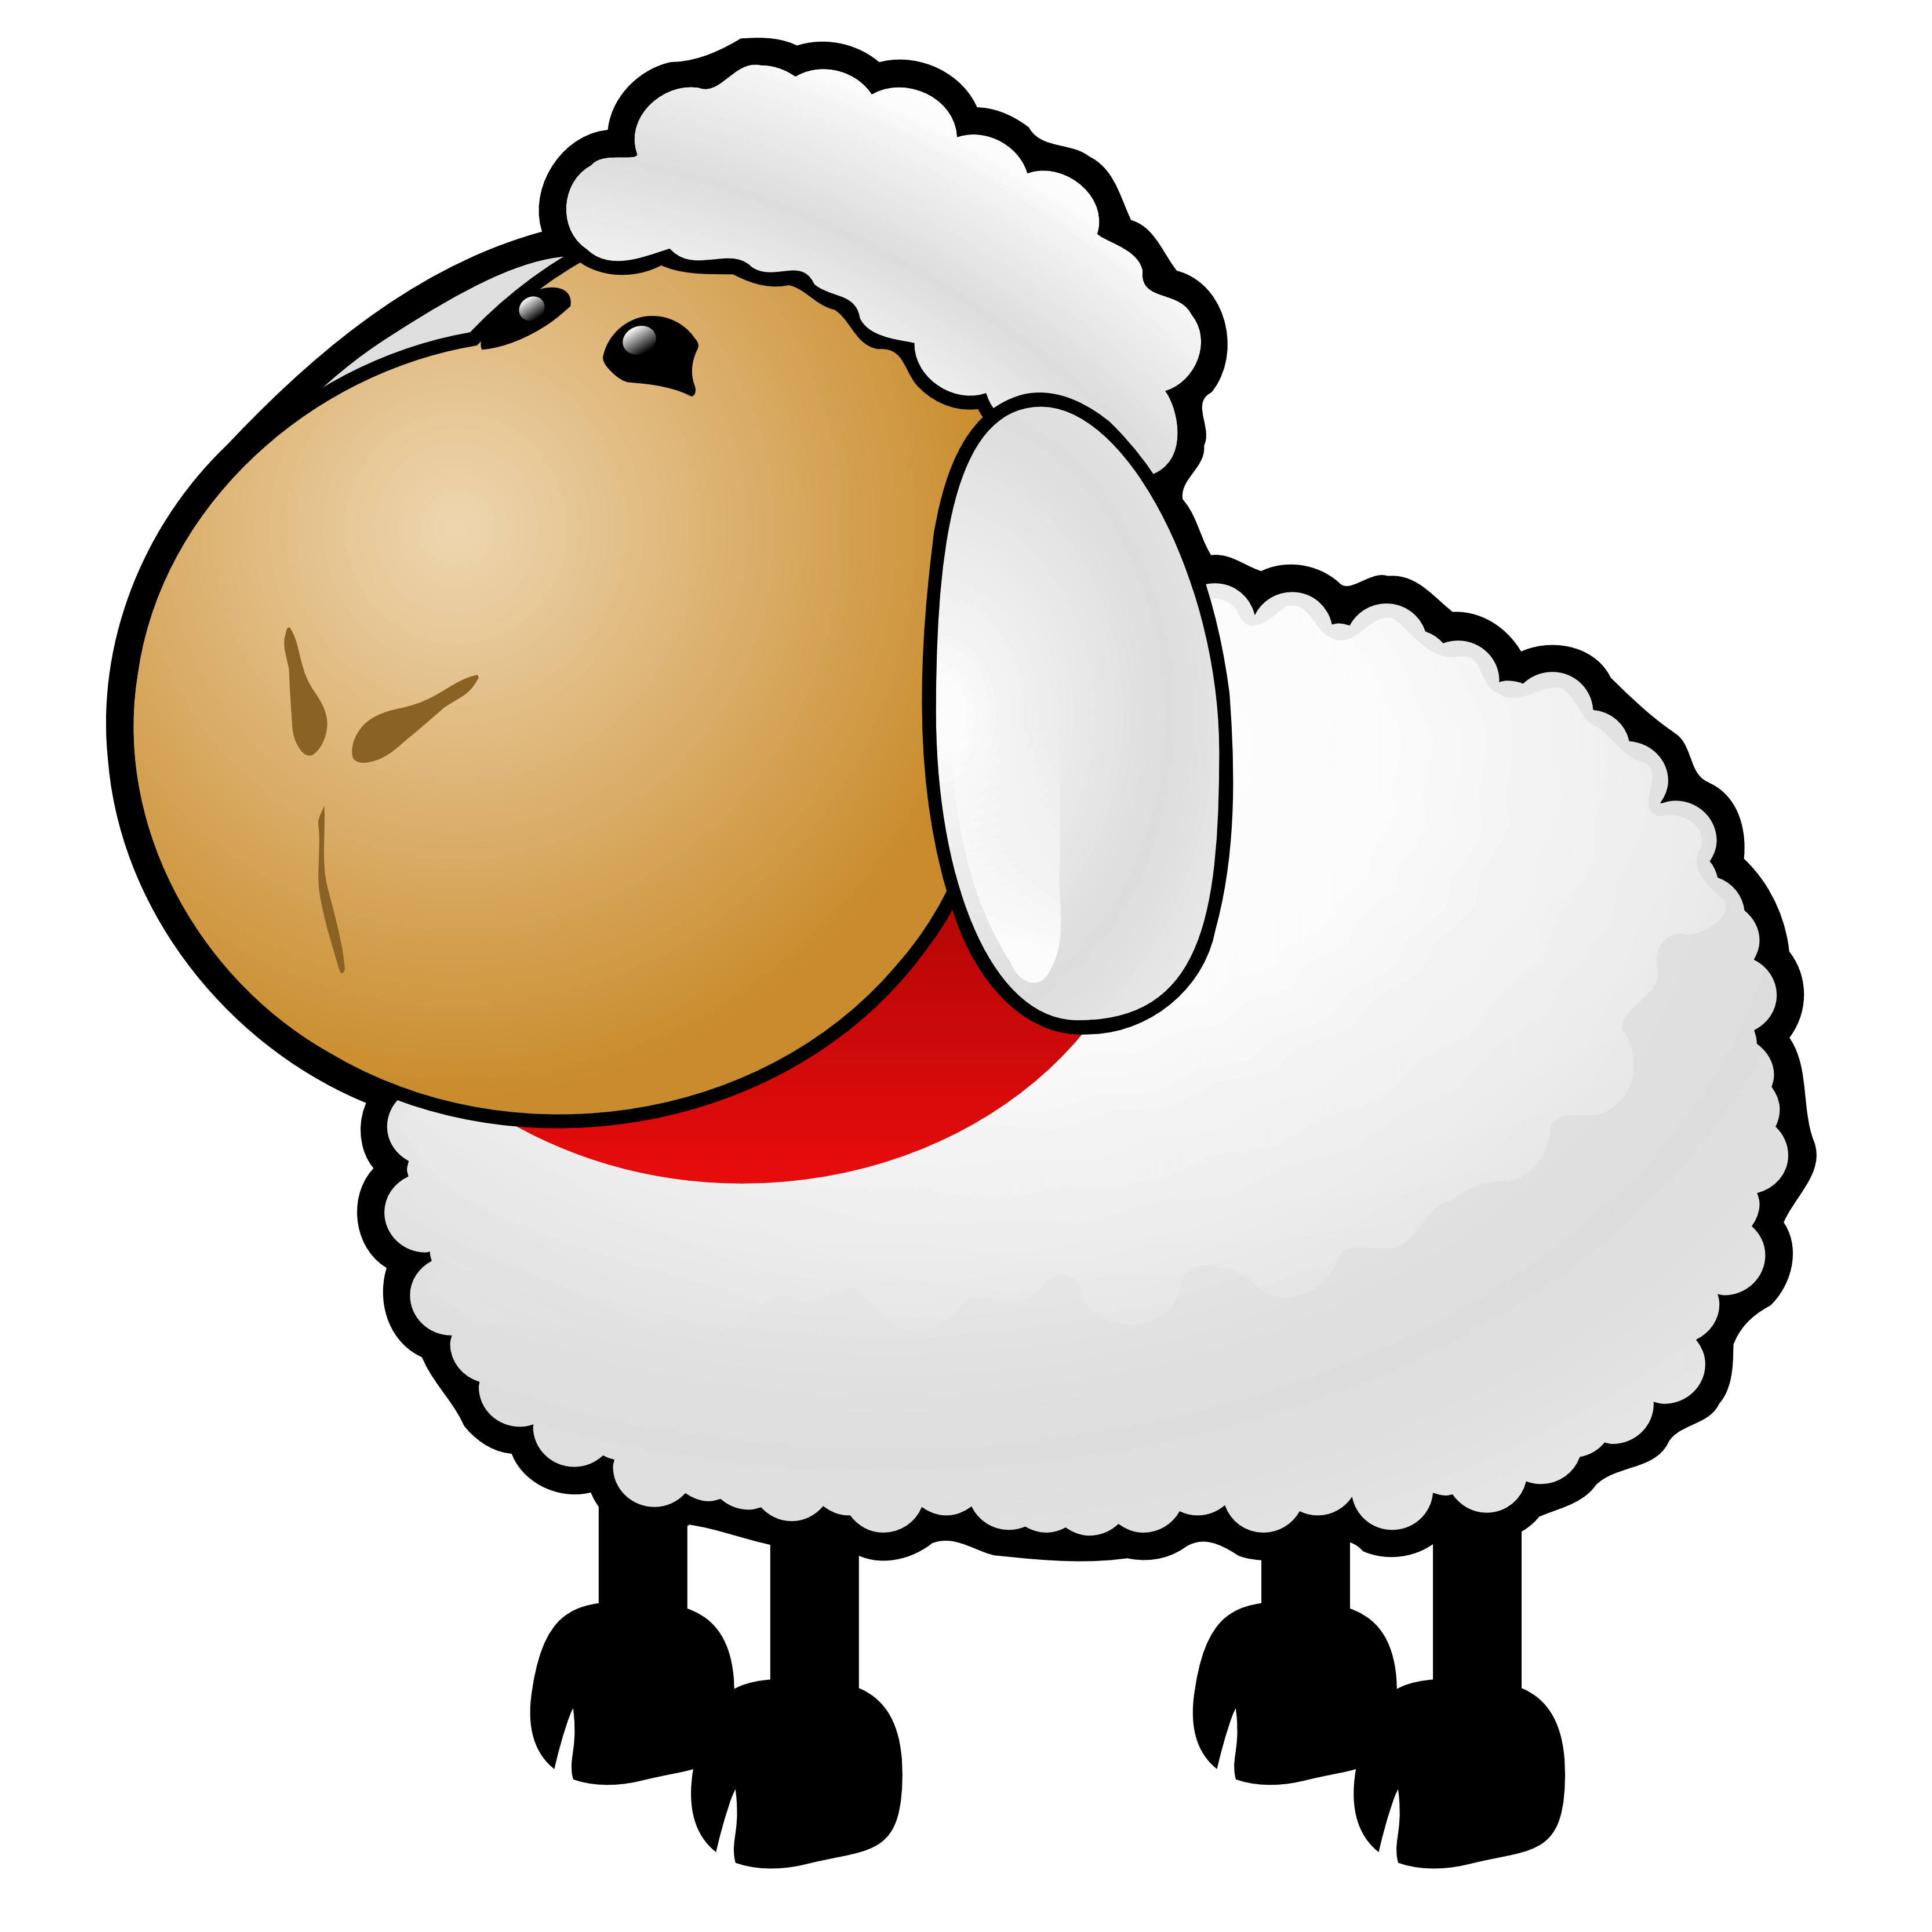 Angry black sheep clipart free clipart image.